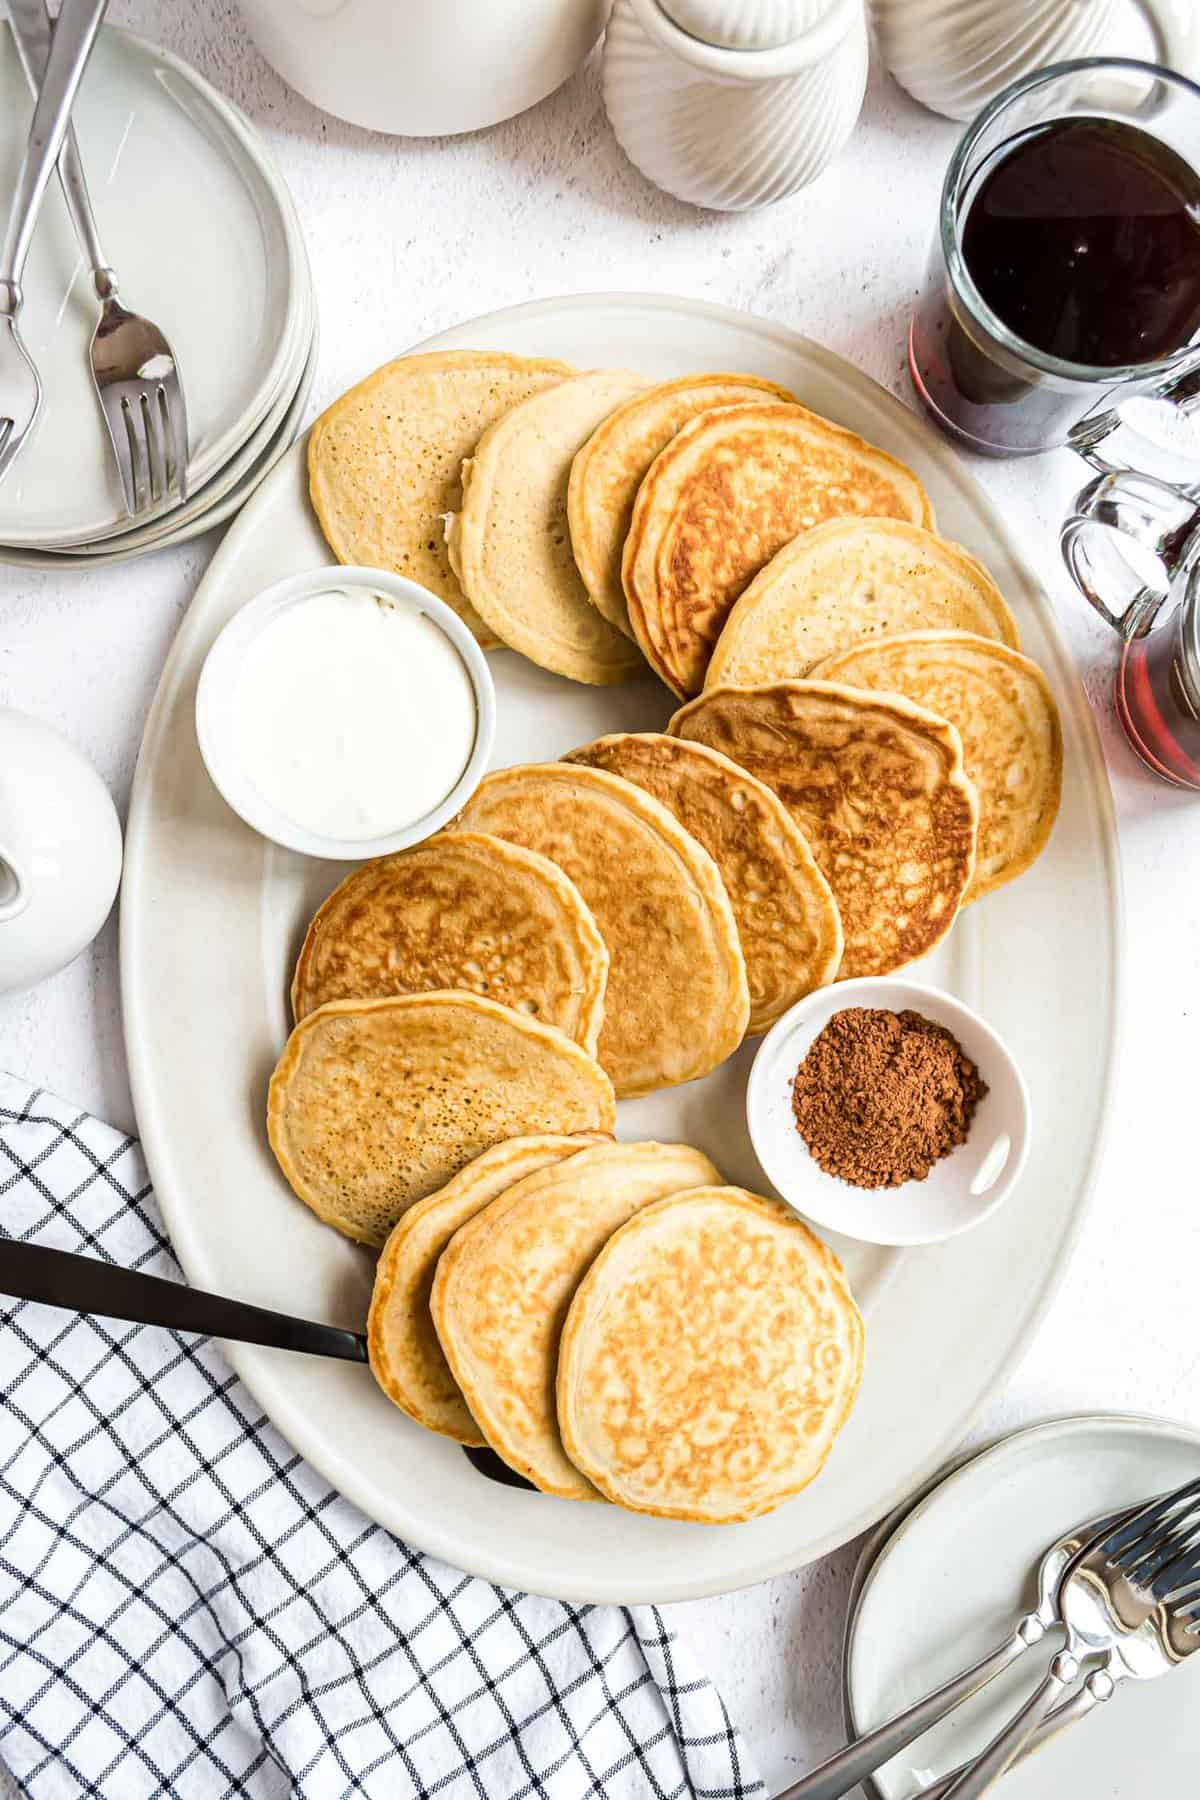 Pancakes on an oval white platter.